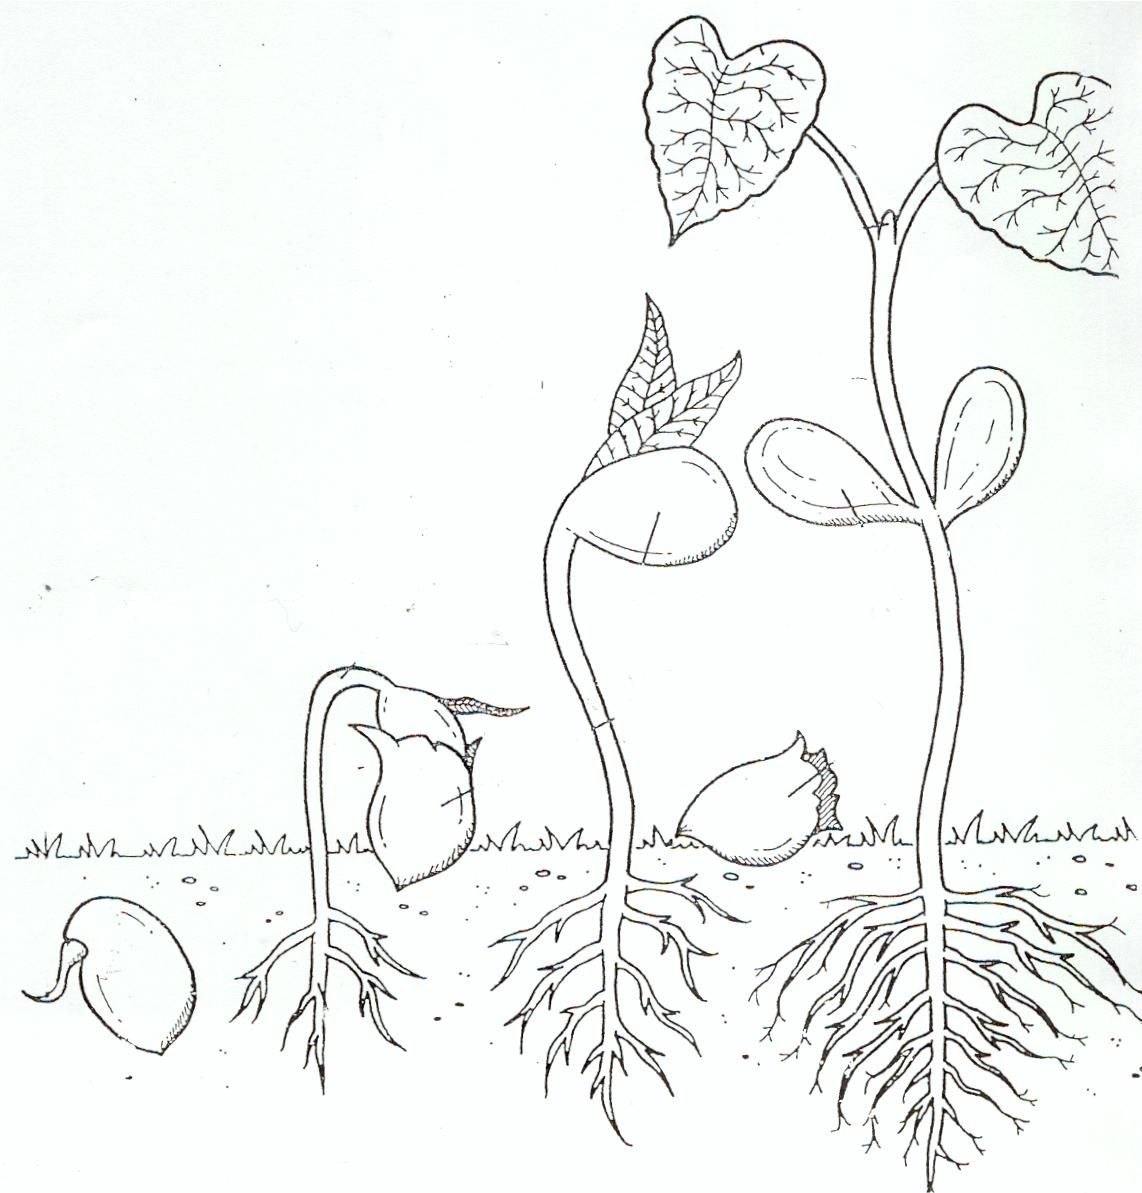 Life Cycle Coloring Page Of A Seed To Plant A Flower Life Cycle